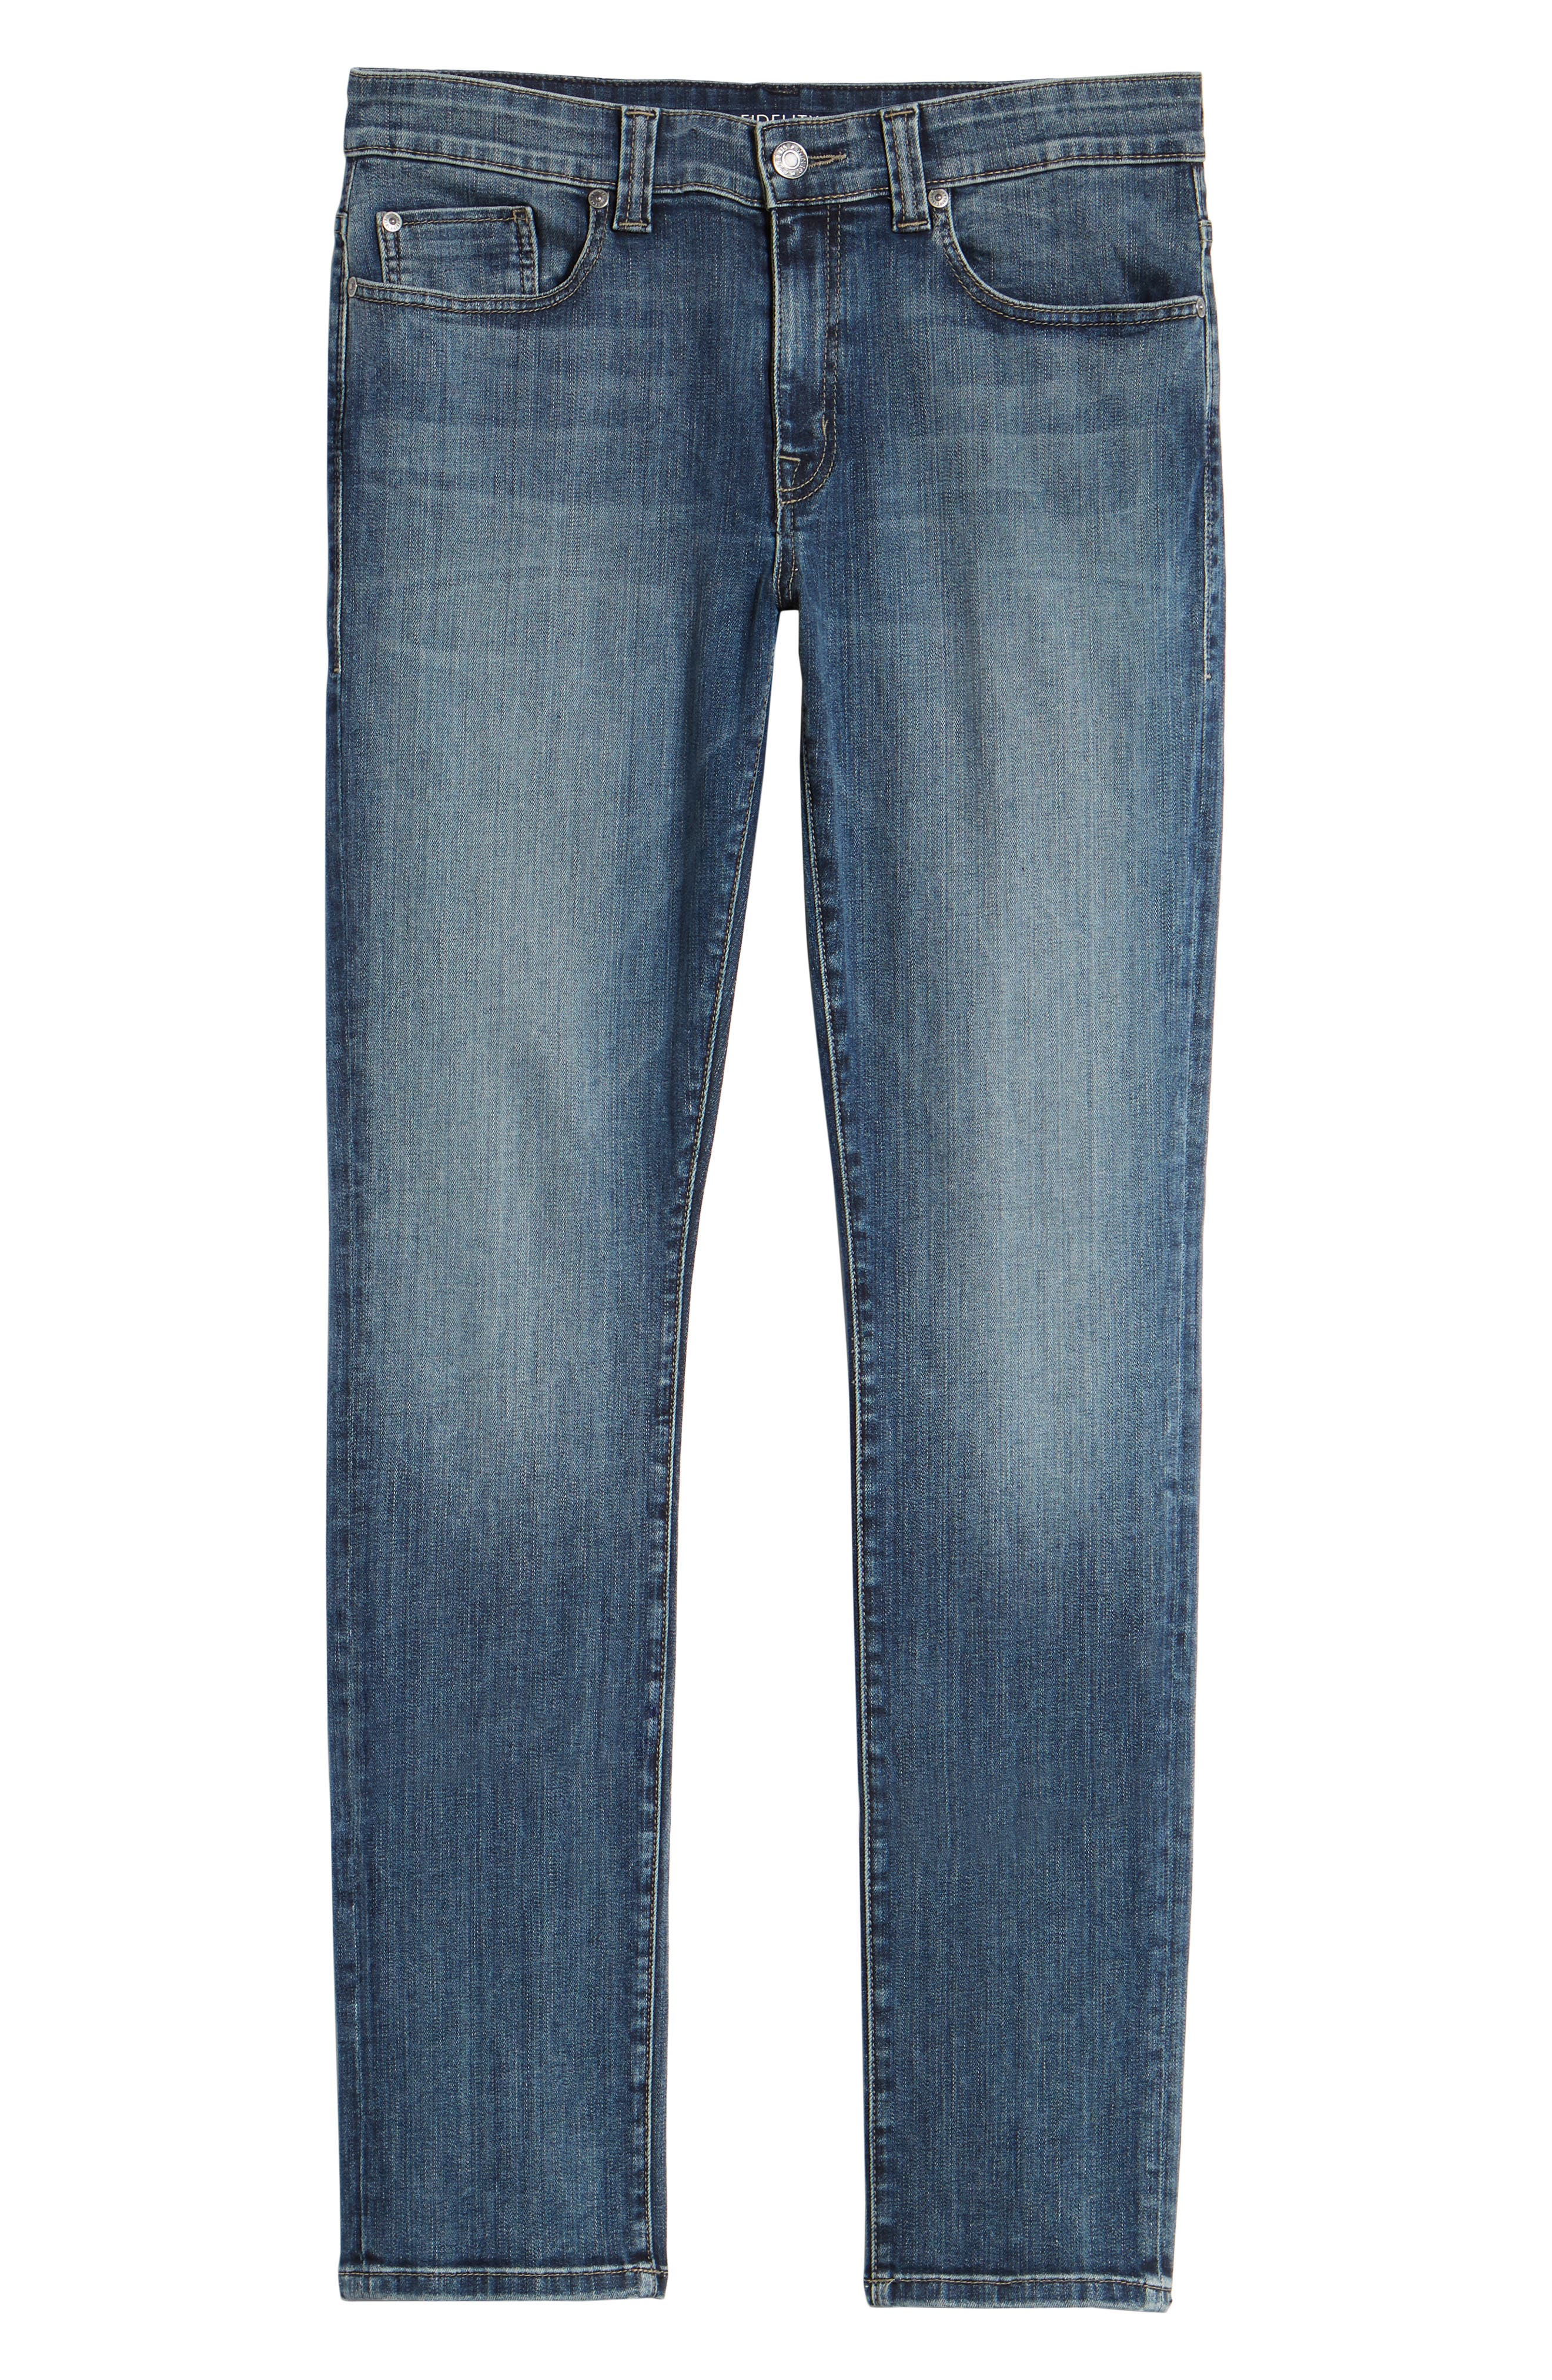 Jimmy Slim Straight Leg Jeans,                             Alternate thumbnail 6, color,                             CATHEDRAL